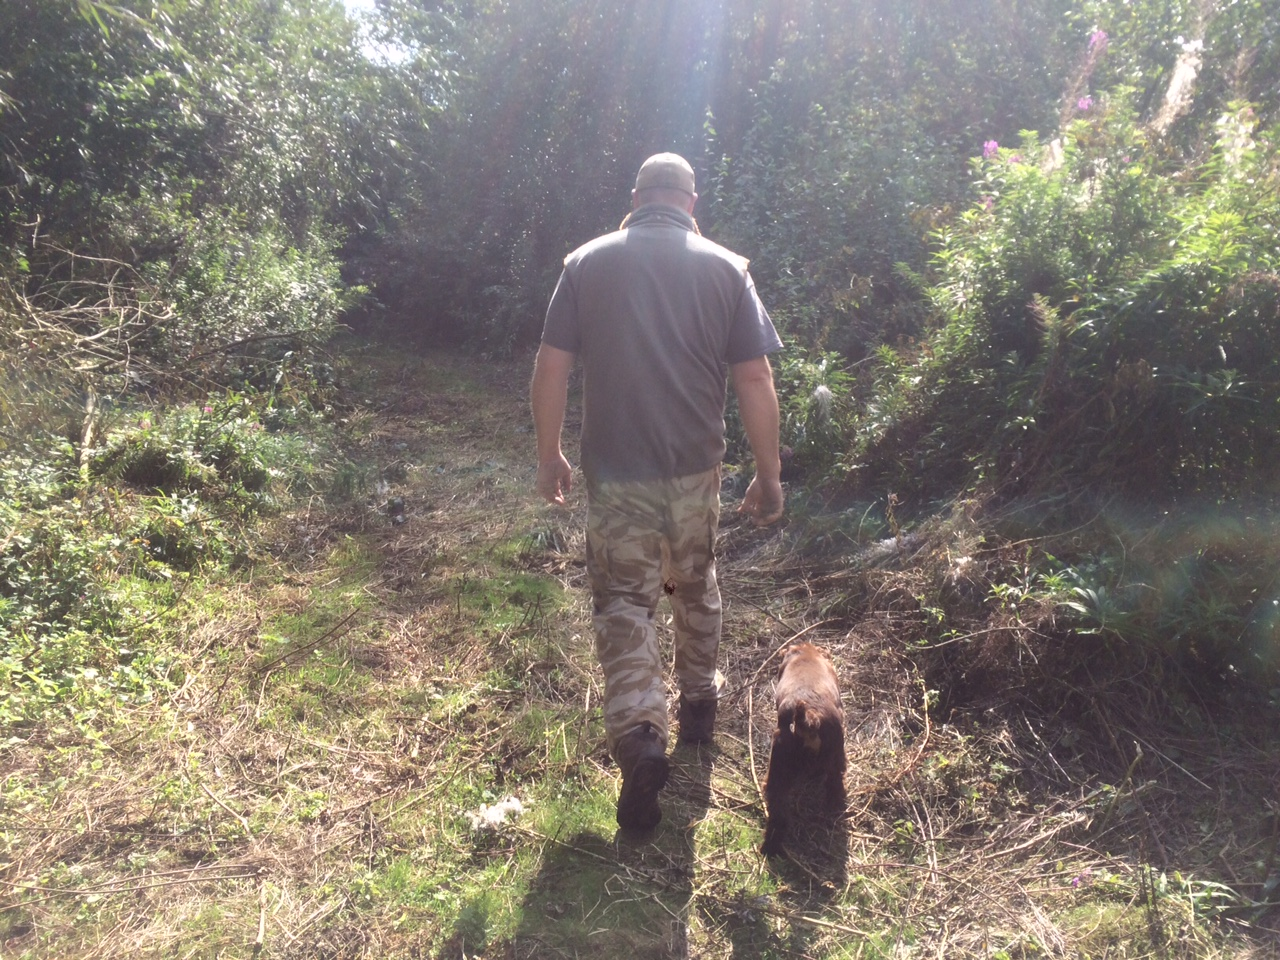 Gamekeeping – Preparing For The Shooting Season With Steve Wild.